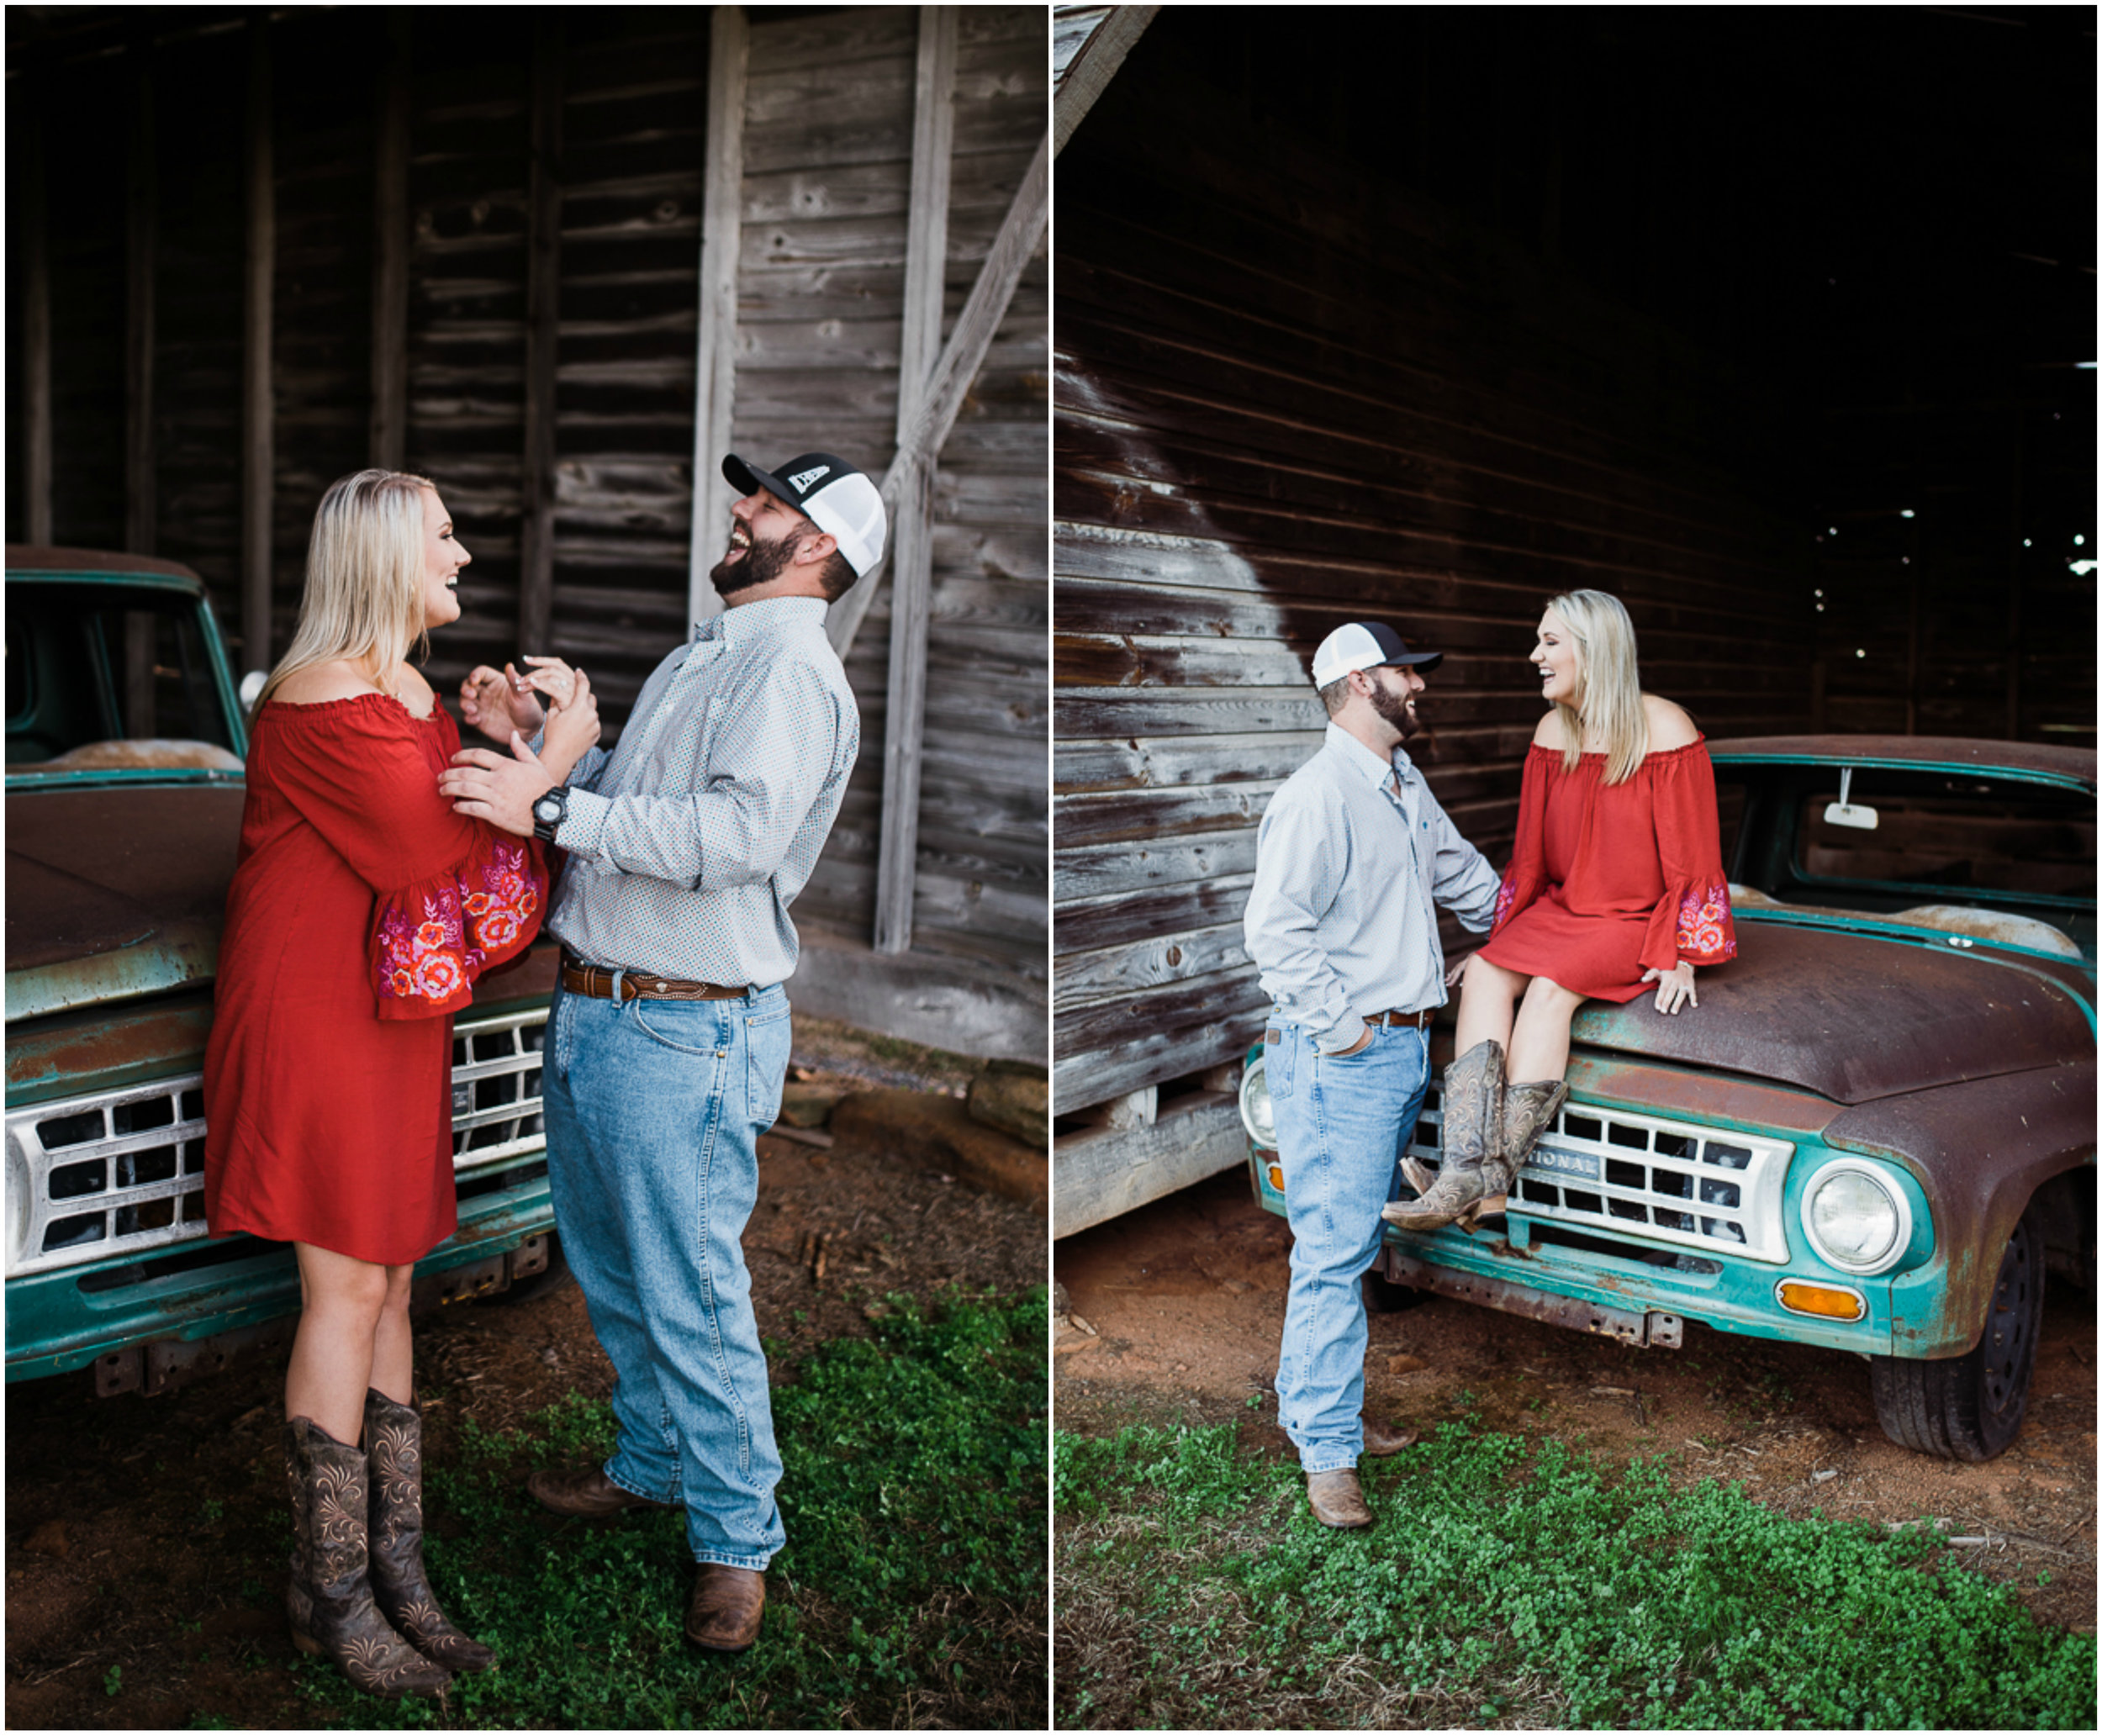 Fall Engagement Photos, Red Dress, Barn Session, Rustic.jpg